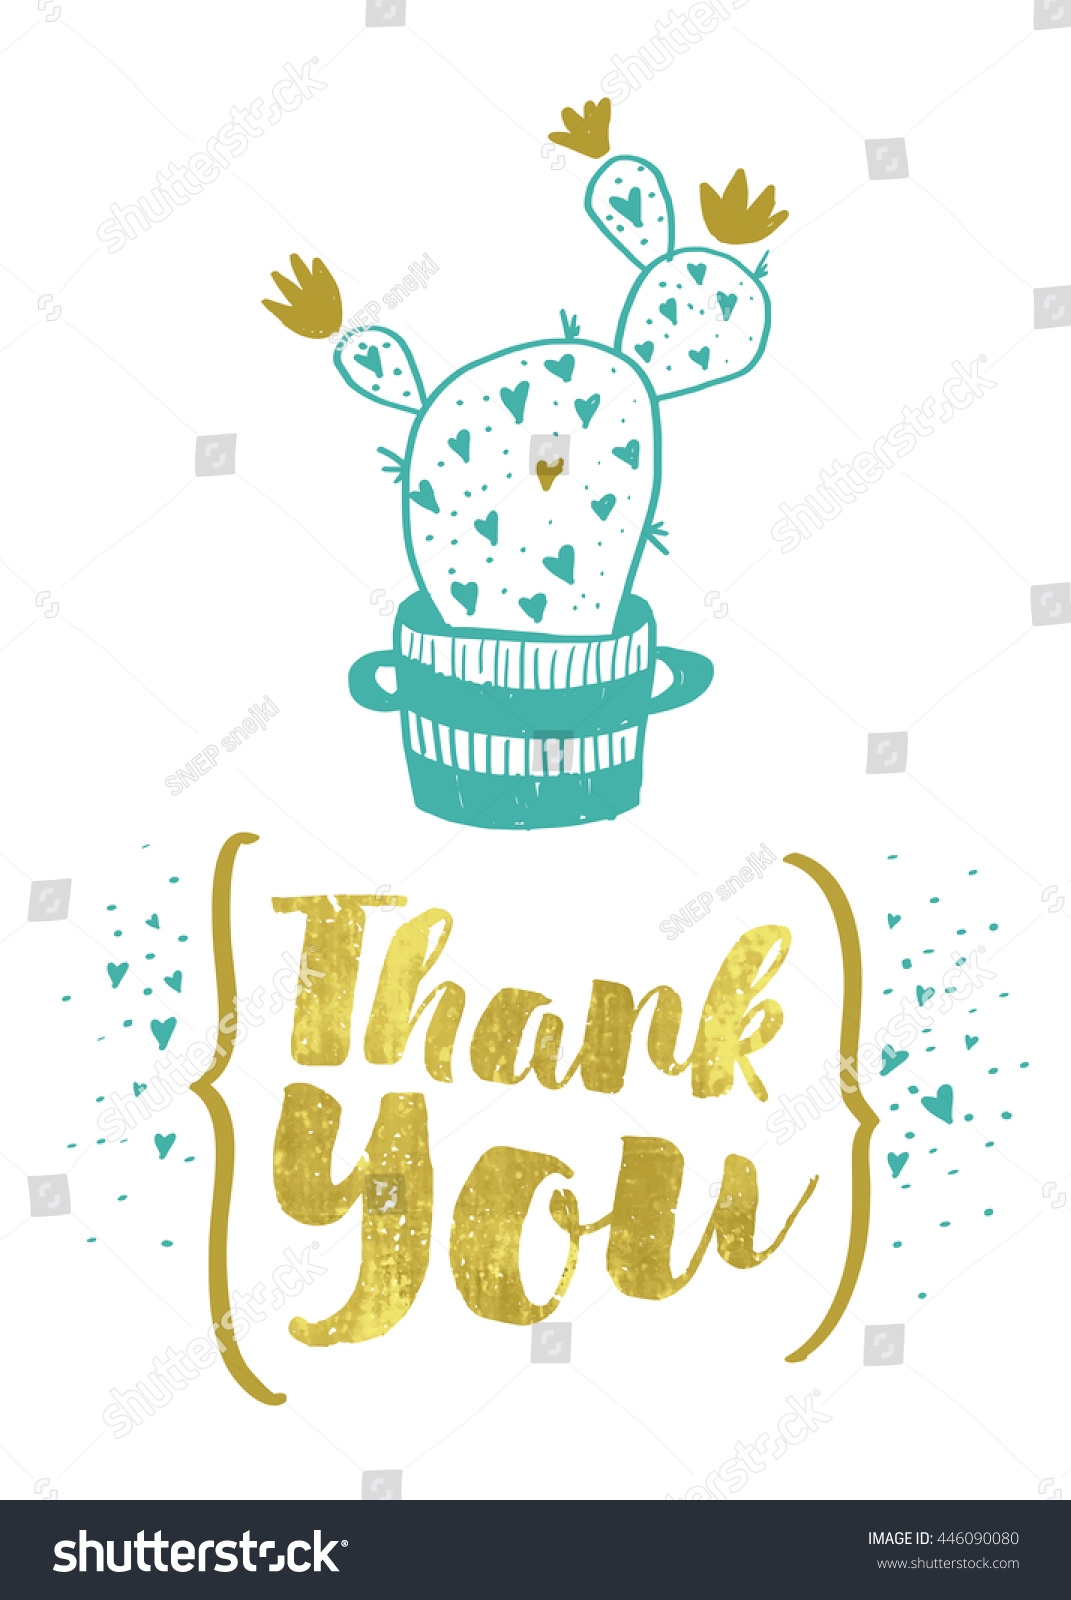 Thank You Greetings Card Stock Vector 446090080 Shutterstock